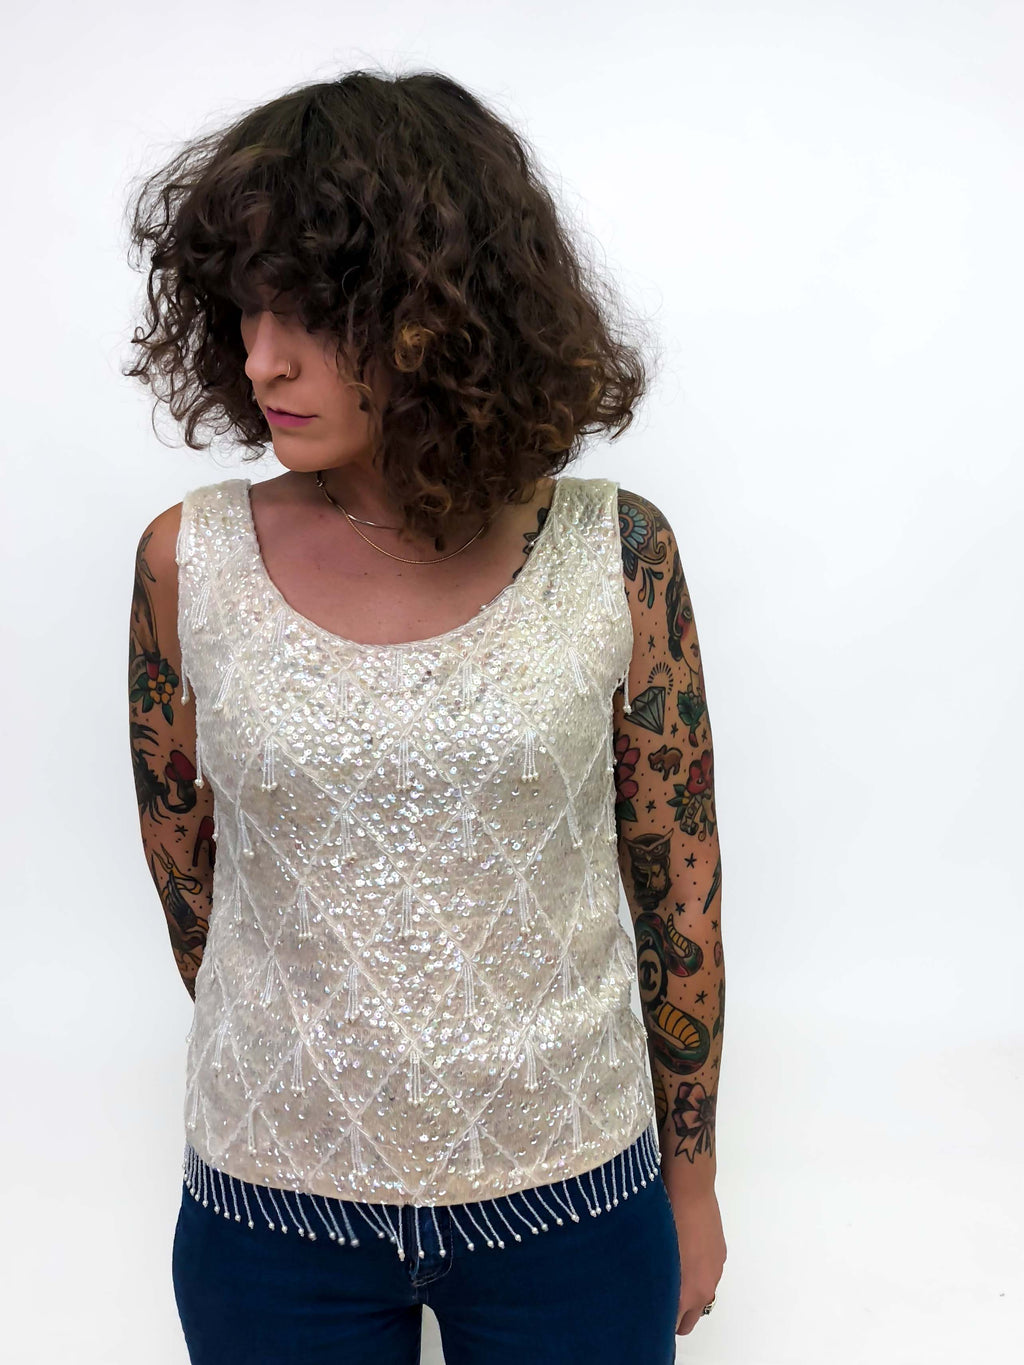 Vintage Sweater Blouse : Medium : The Imperial Top